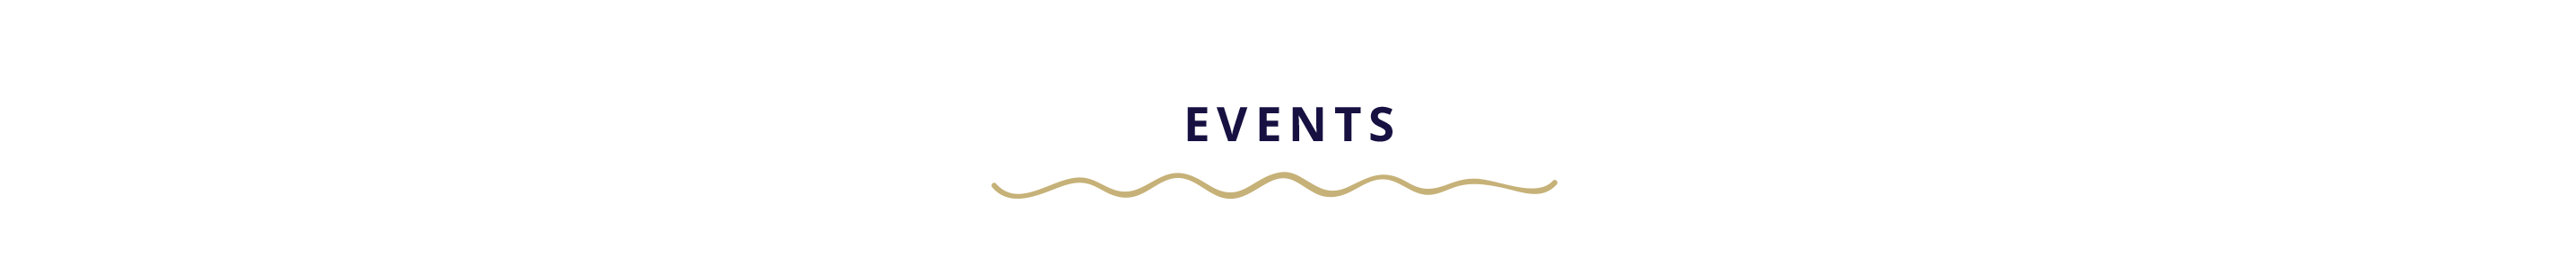 Events_03